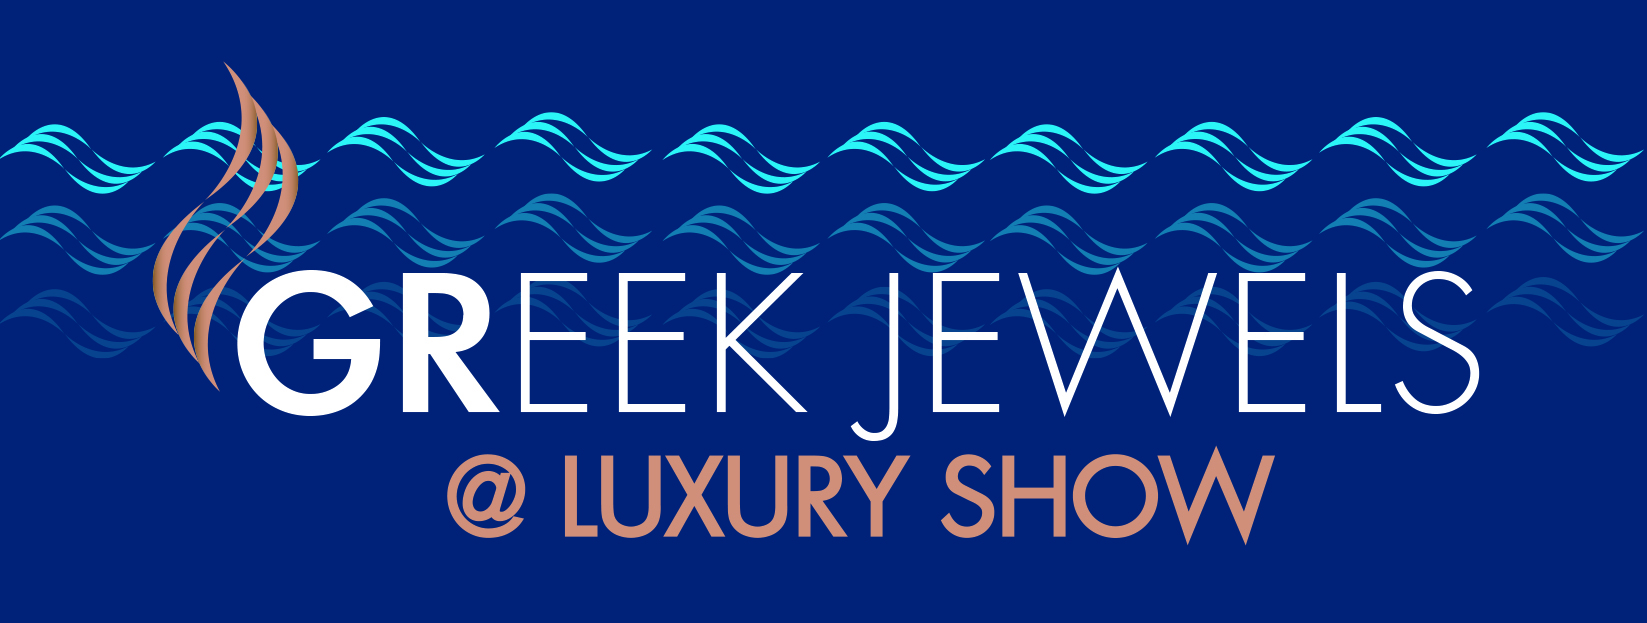 Greek Jewels at LUXURY Logo Blue